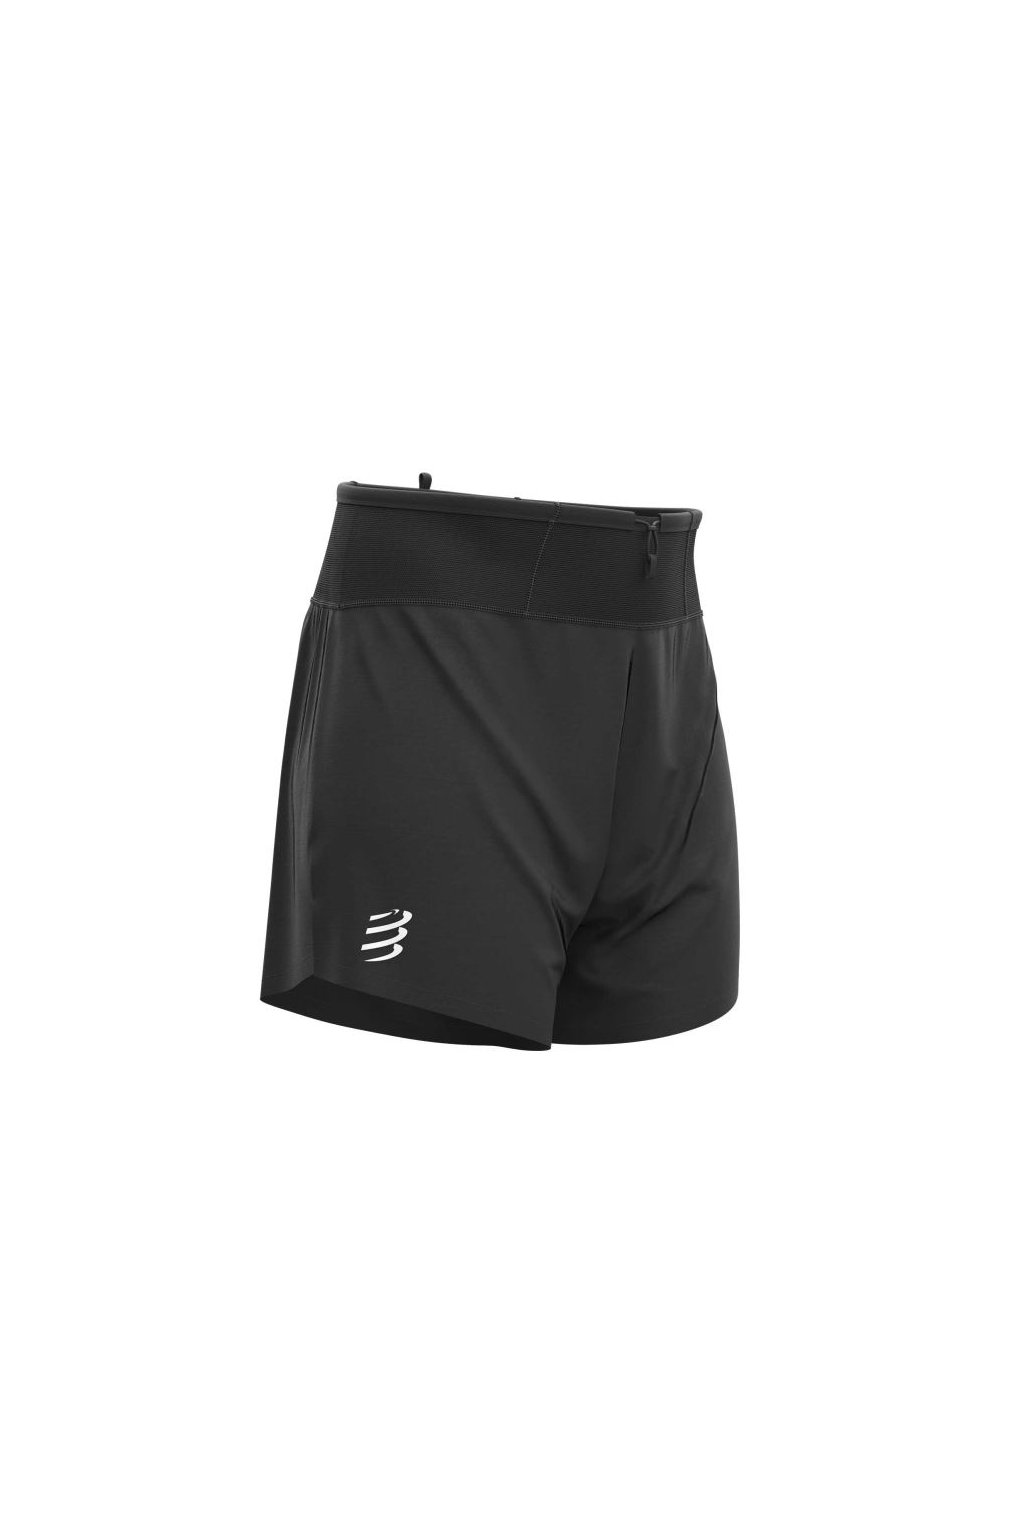 trail racing short (1)